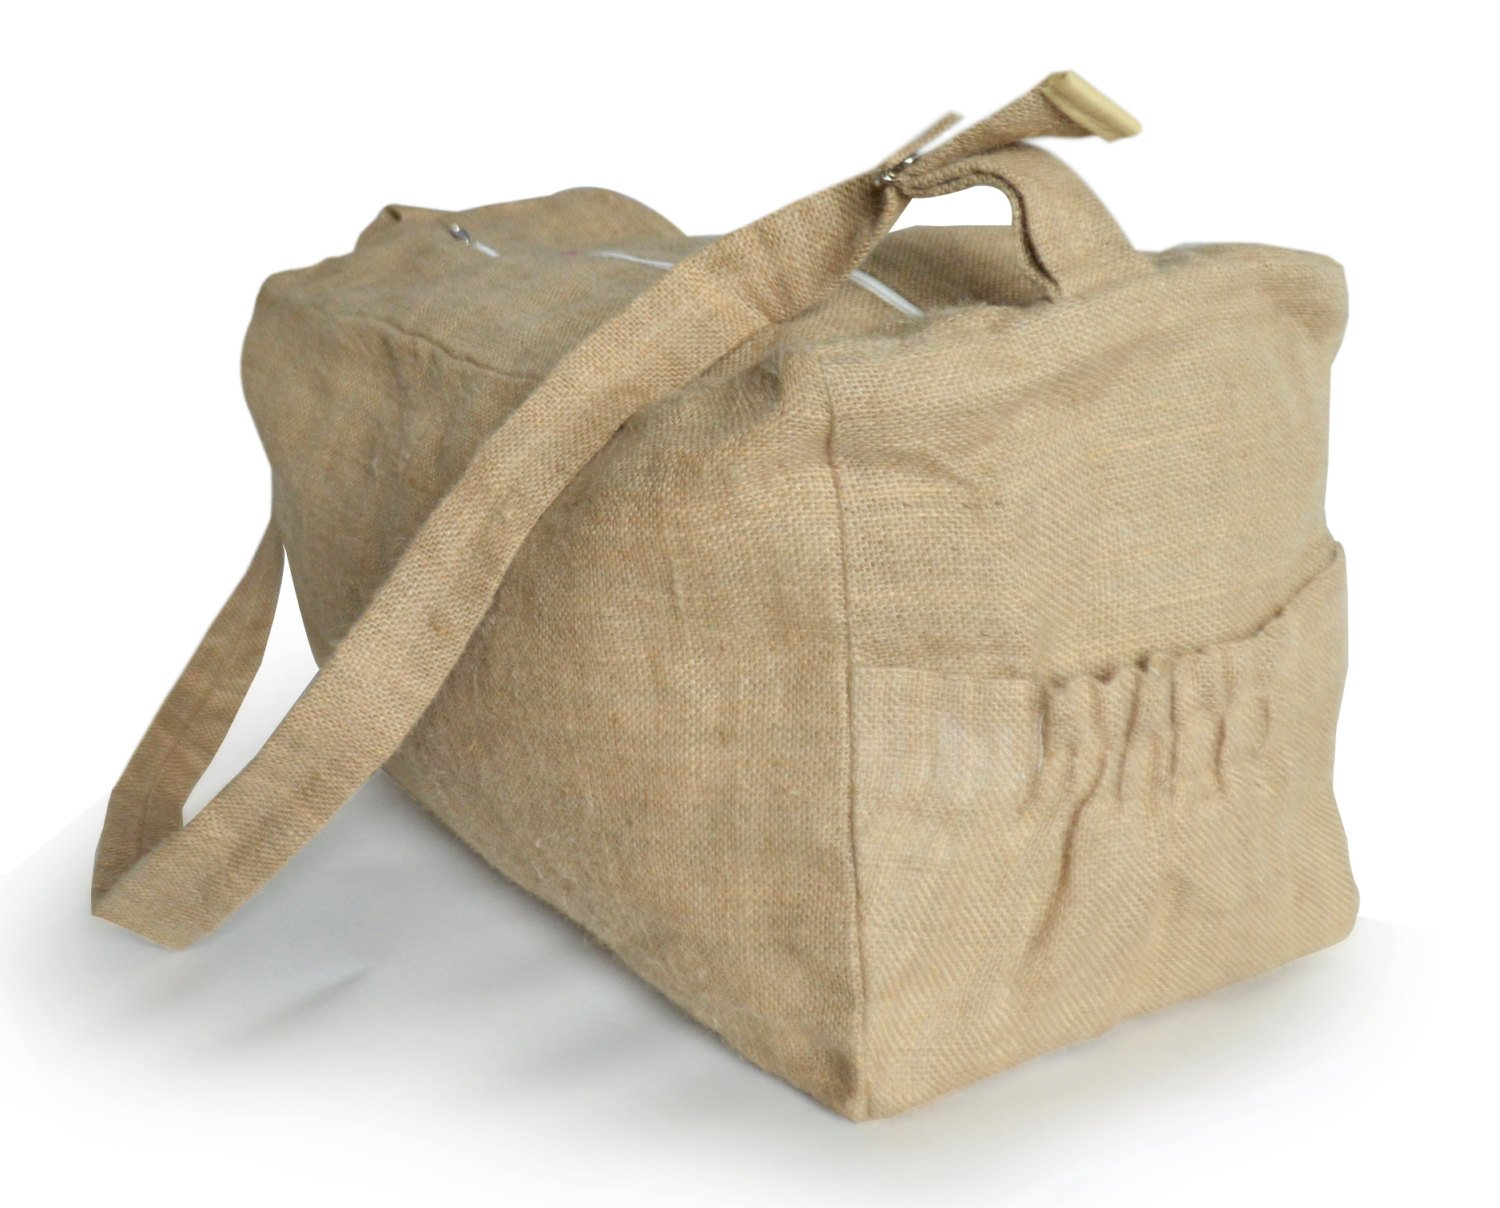 Amore Beaute Handcrafted Natural Burlap Gym Bag Weekend Bag Women Gym Bag Gifts Large_Burlap_gym_bag